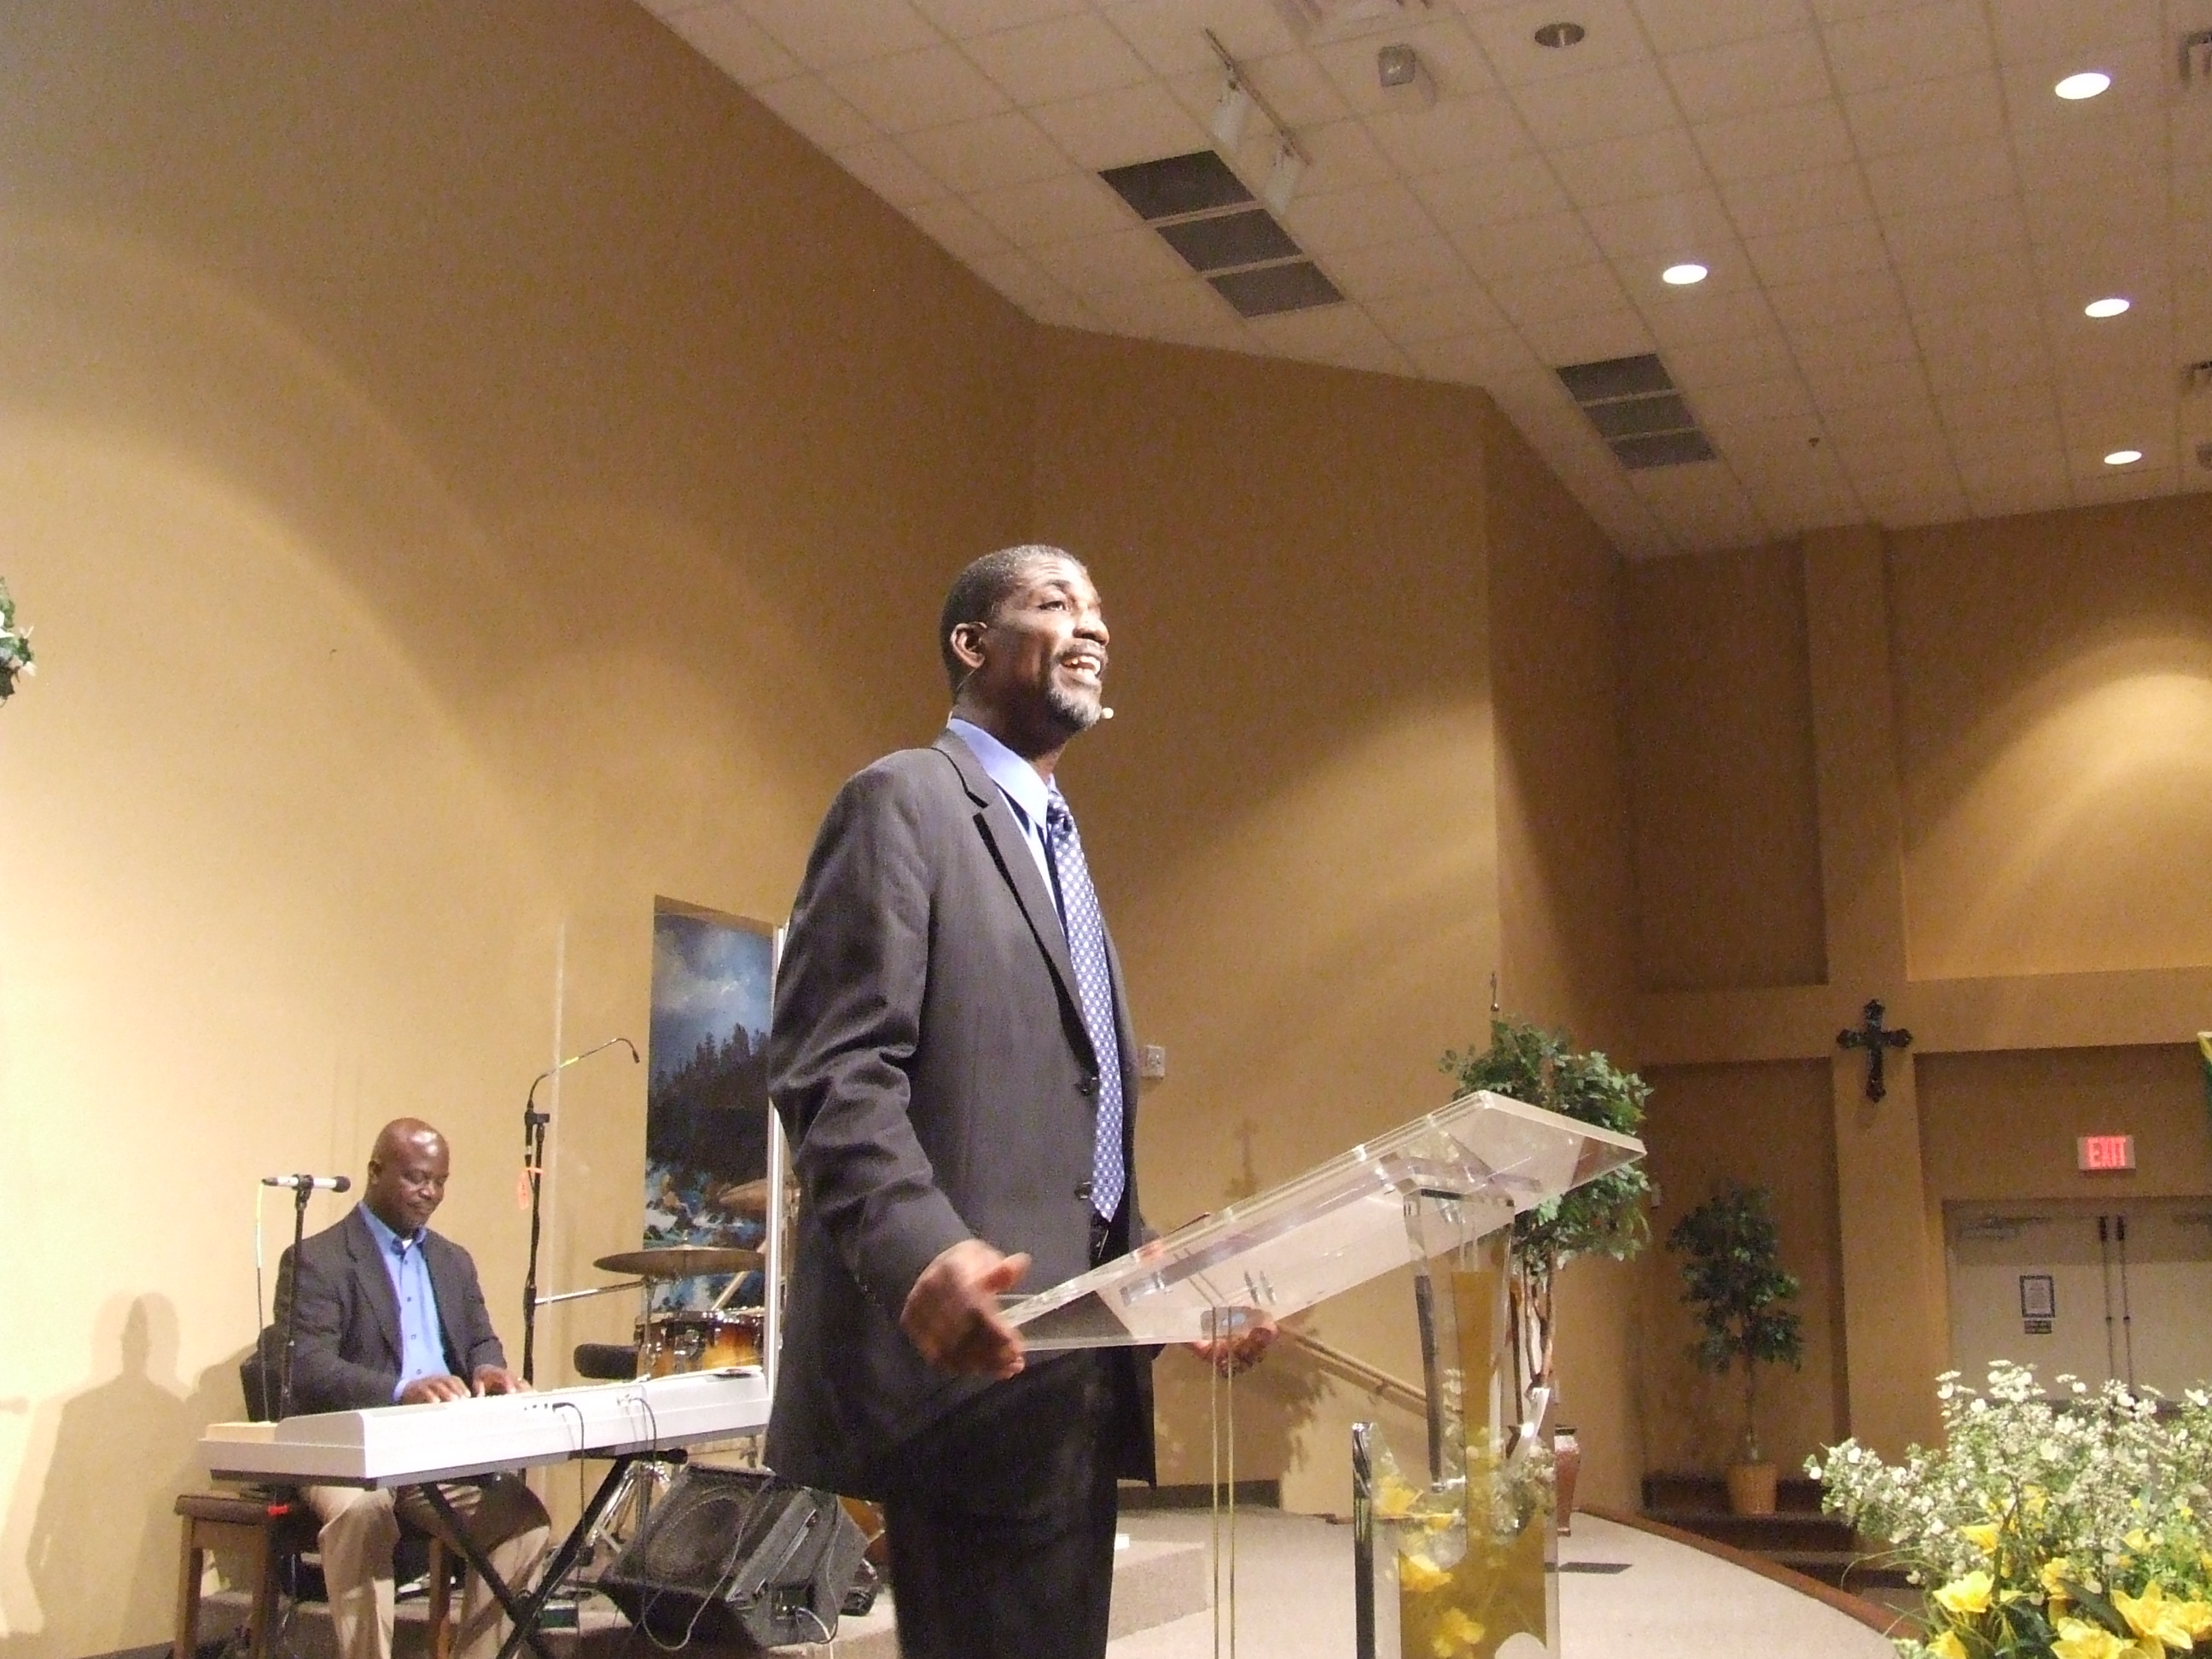 Pastor Benjamin at the podium speaking